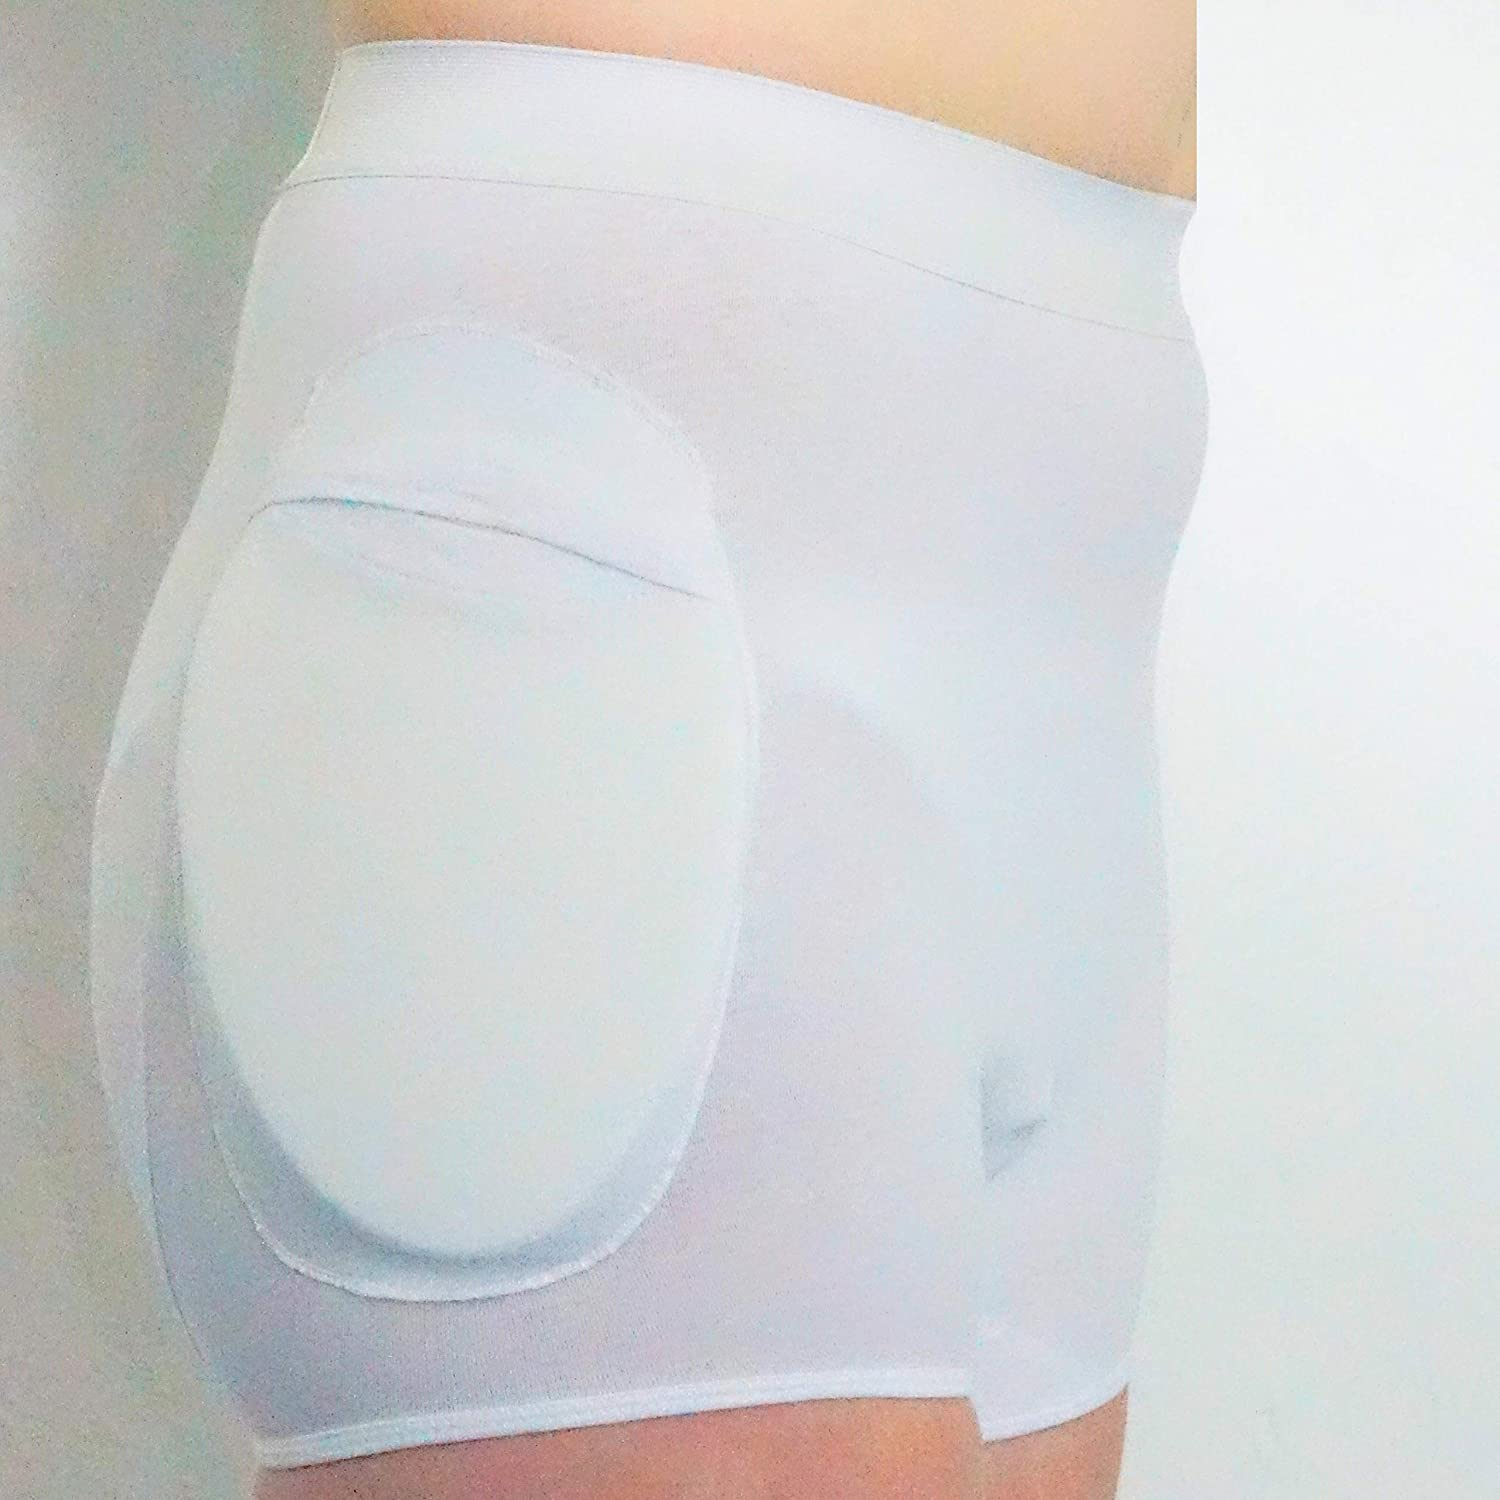 SafetySure Hip Protector White XLarge Shipping 2021 autumn and winter new included